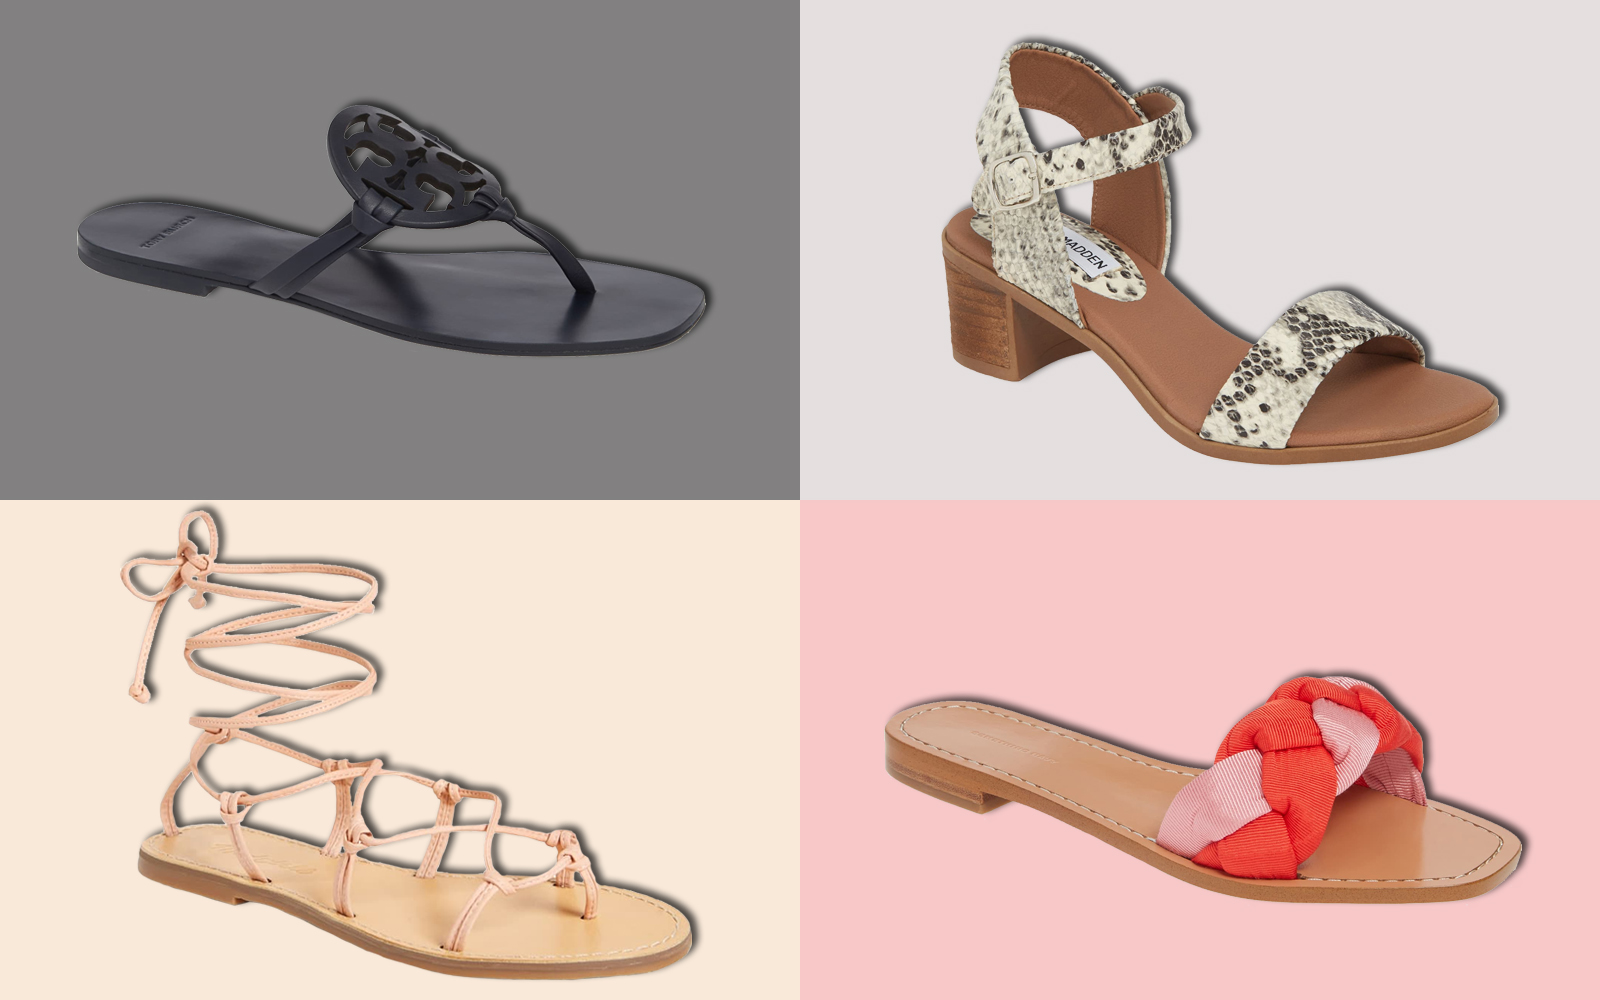 The Best Sandals From Nordstrom's Huge Half-yearly Sale